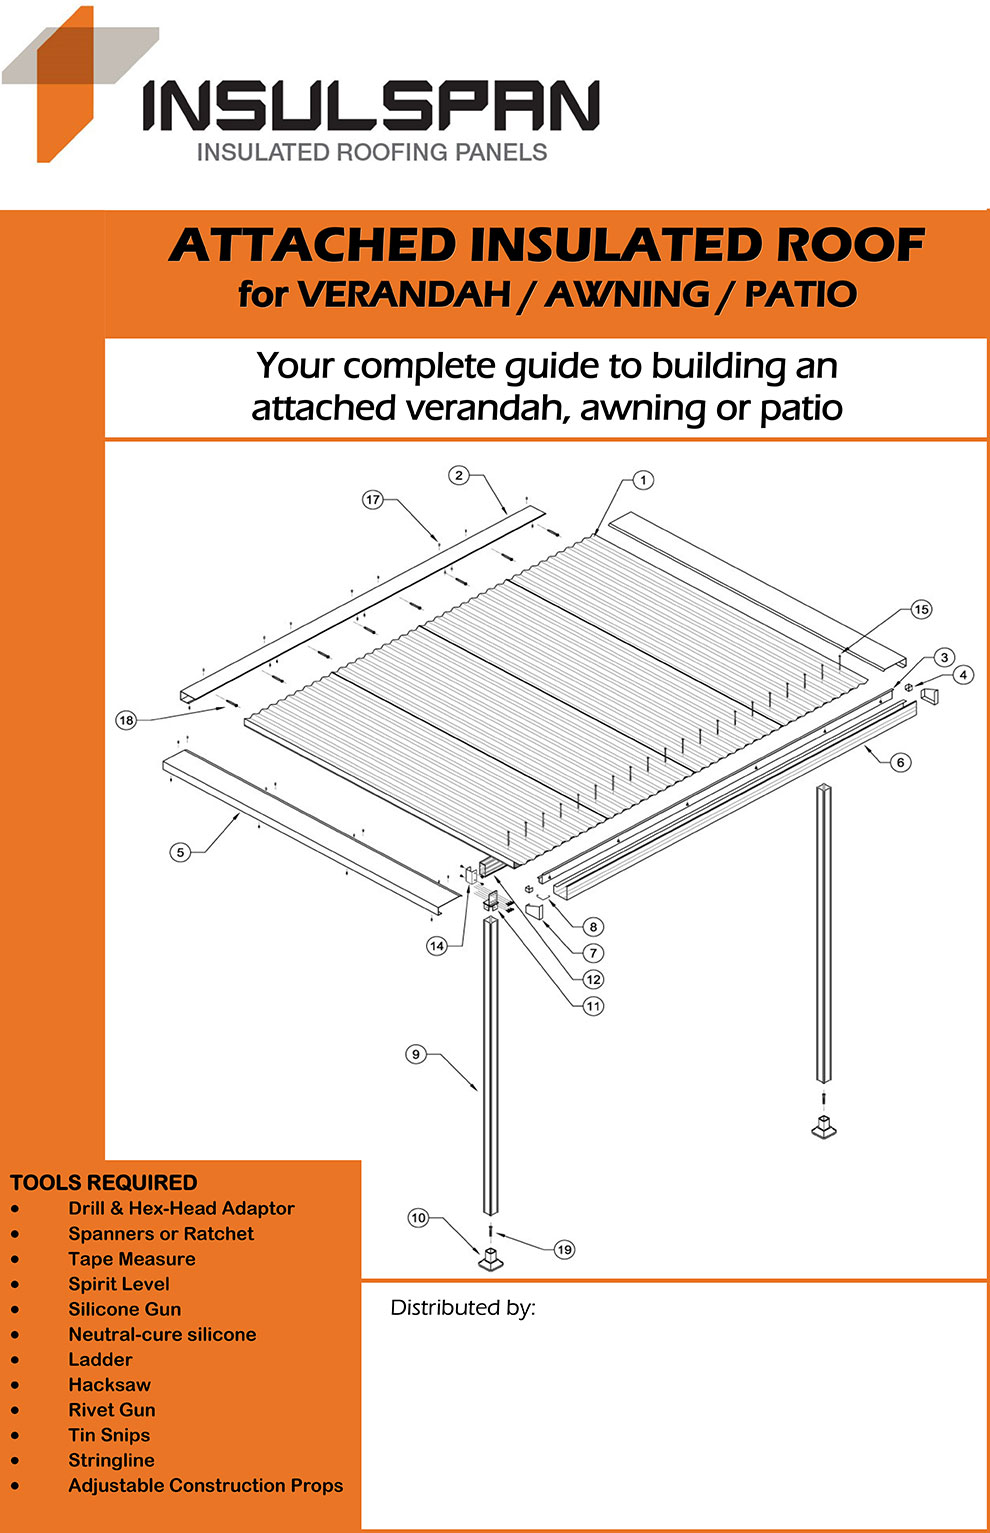 INSULSPAN insulated patio panels installation guide